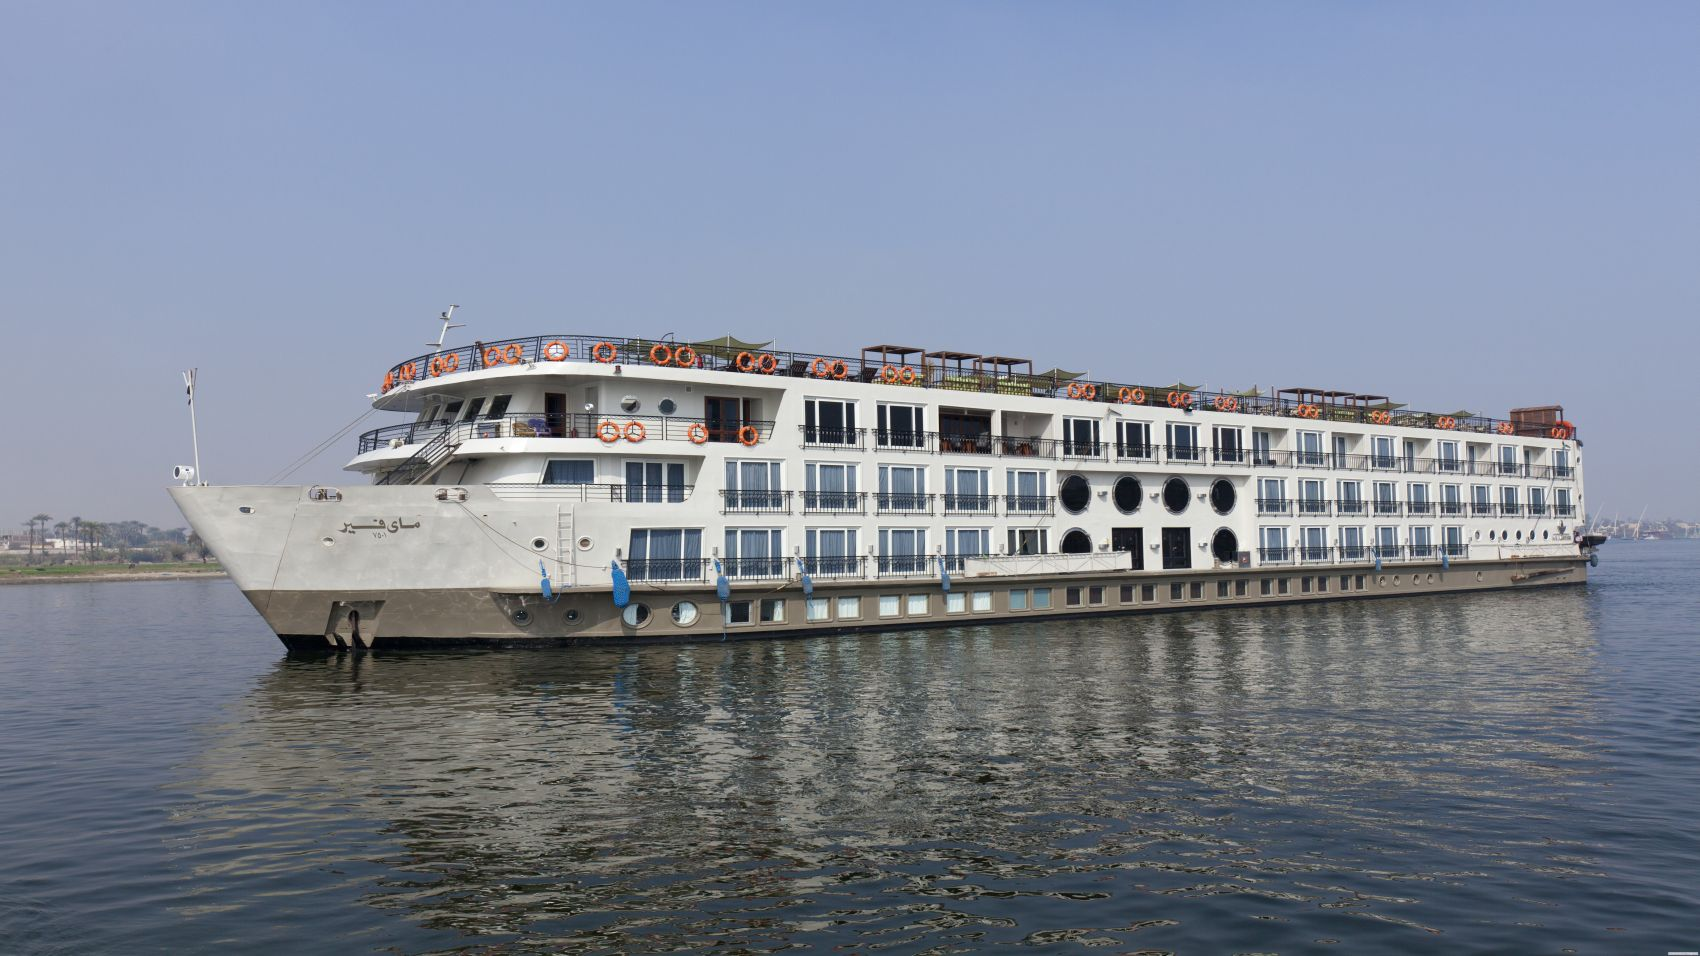 Ms Mayfair 4 Day Nile Cruise